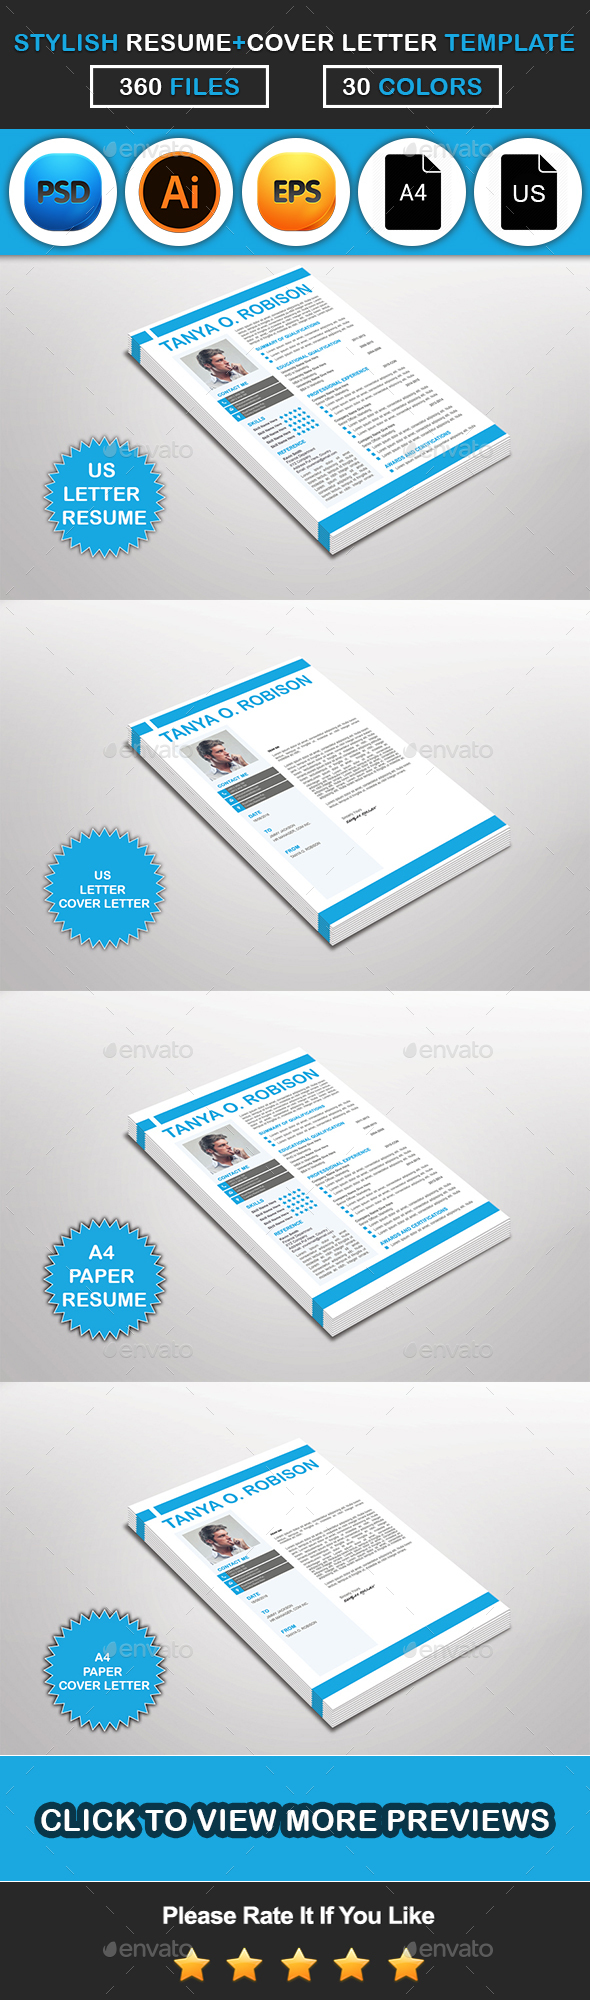 Stylish Resume & Cover Letter Template Design - Resumes Stationery